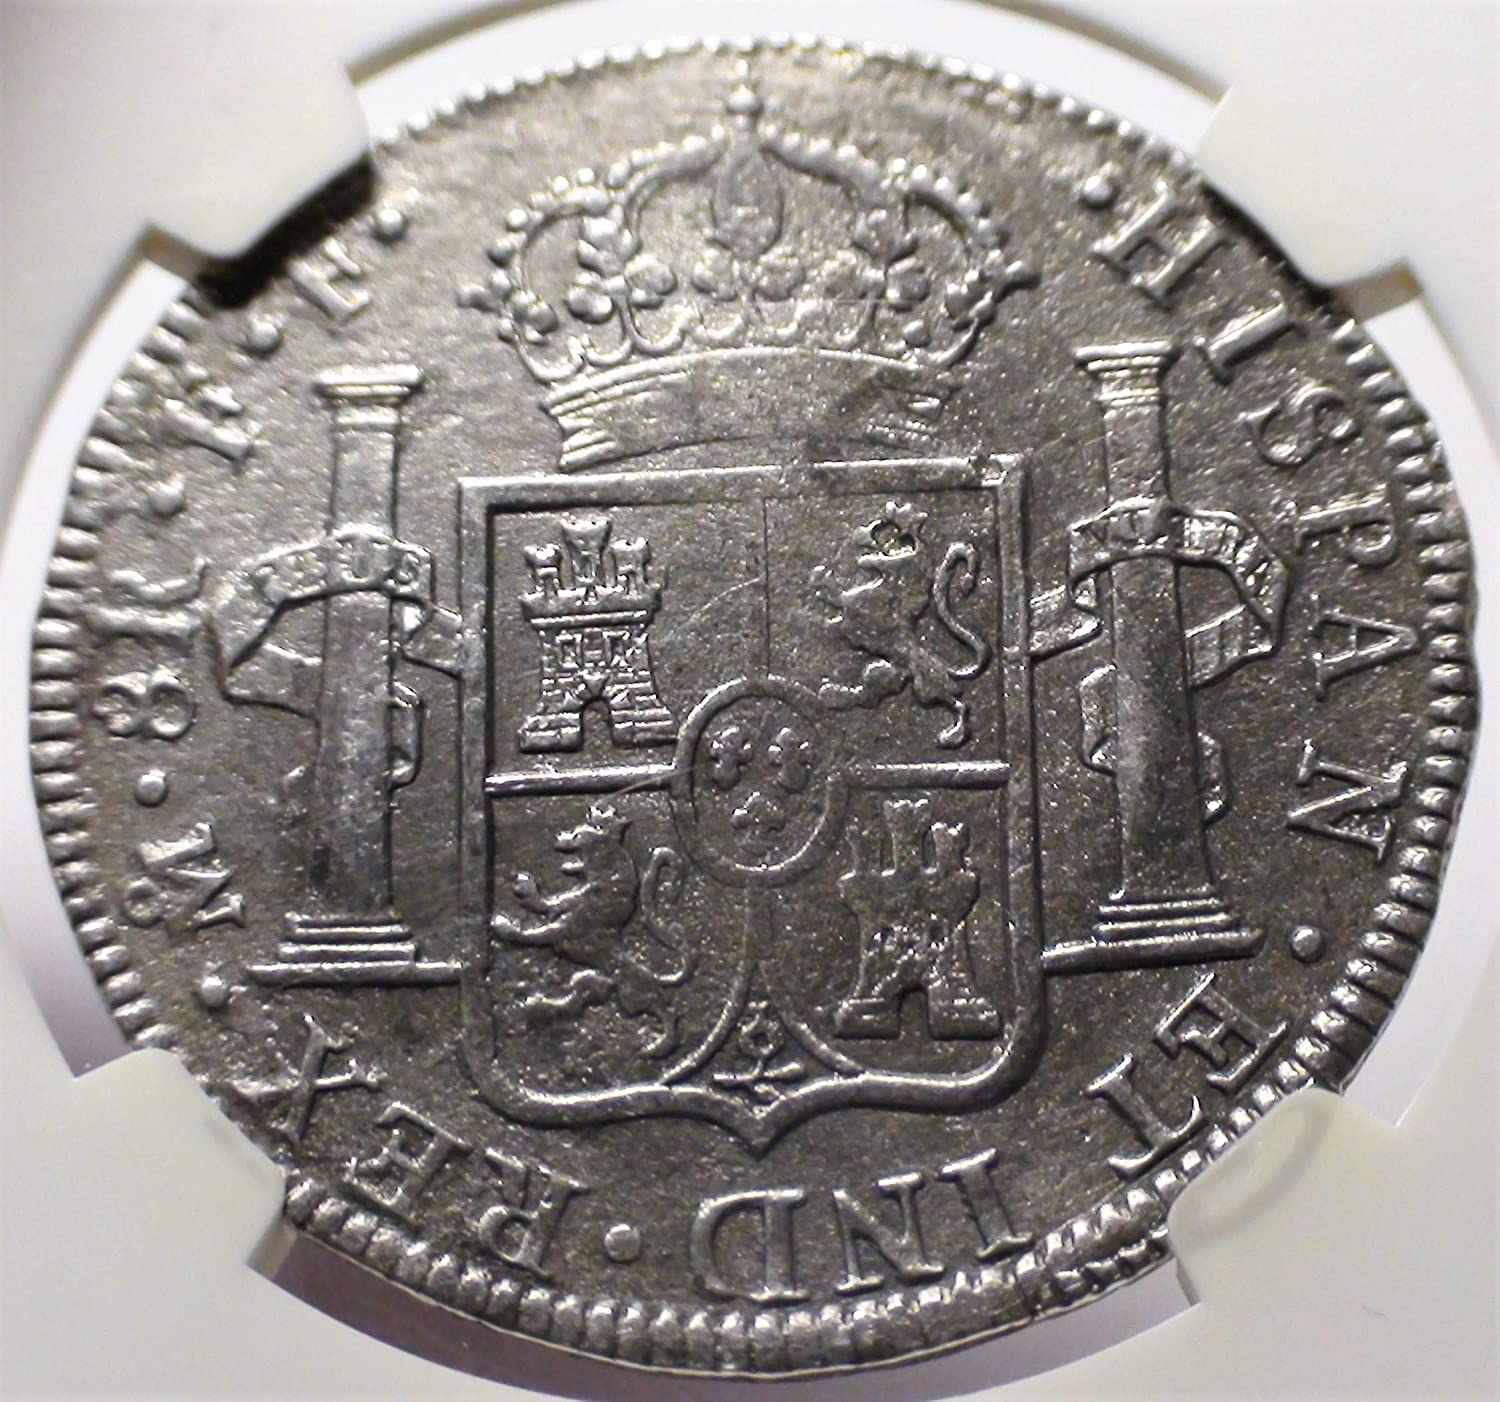 MX 1777 83 Spanish Mexico Shipwreck Antique Silver Coin Authenticated And Certified 8 Reales Genuine NGC At Amazons Collectible Coins Store